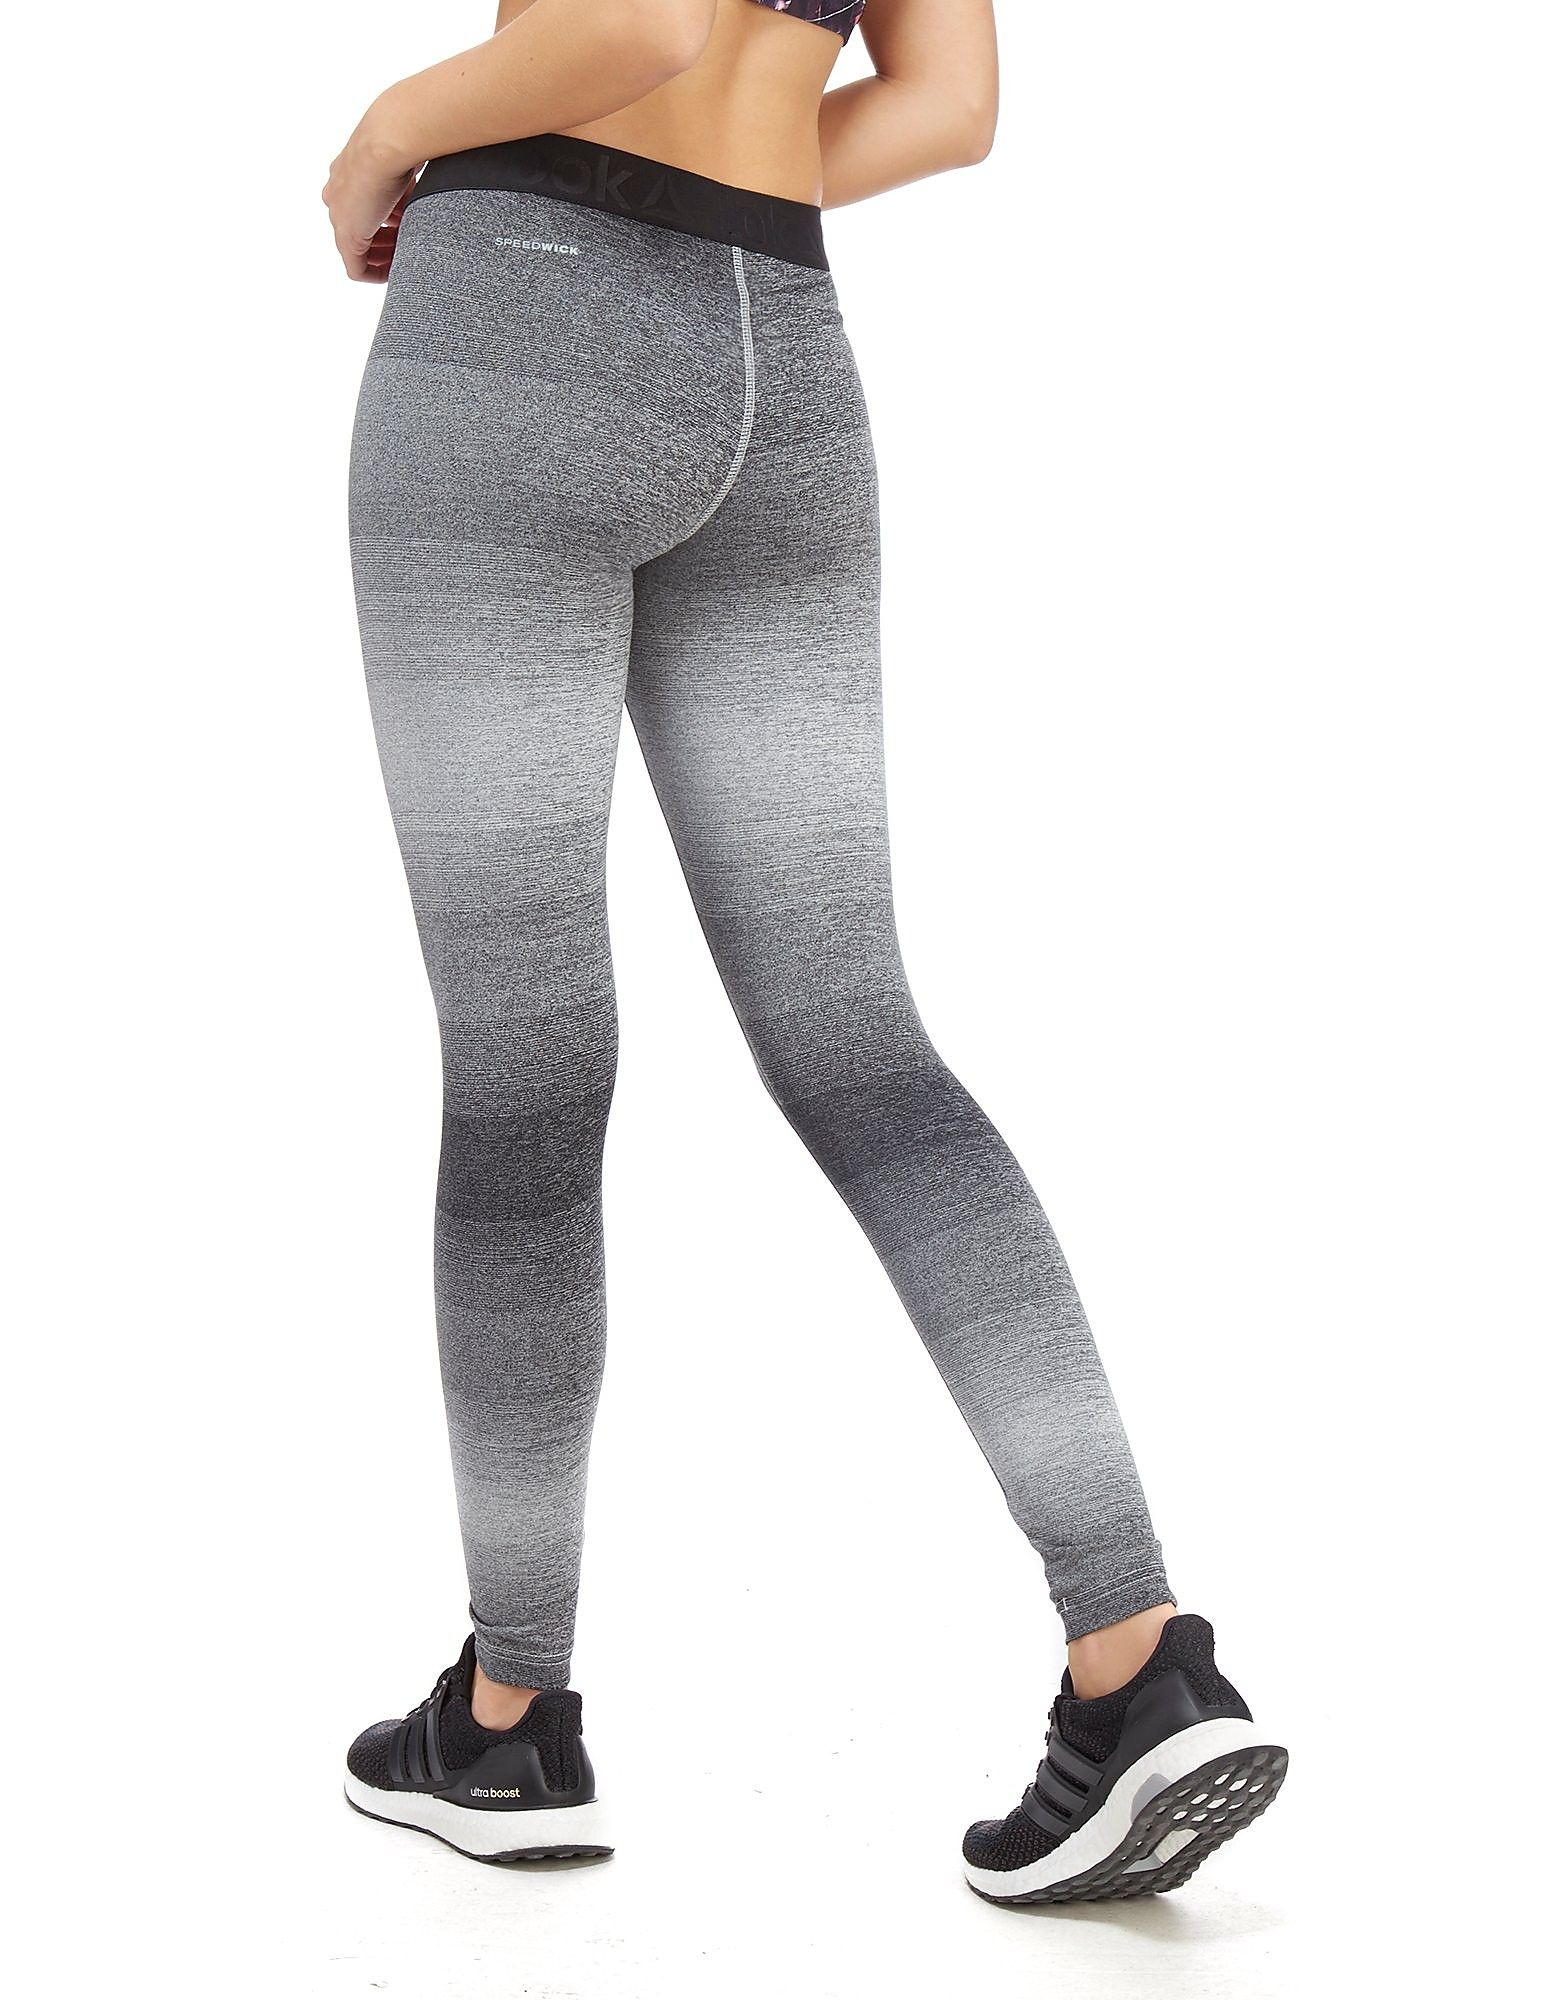 Reebok Ombre Tights